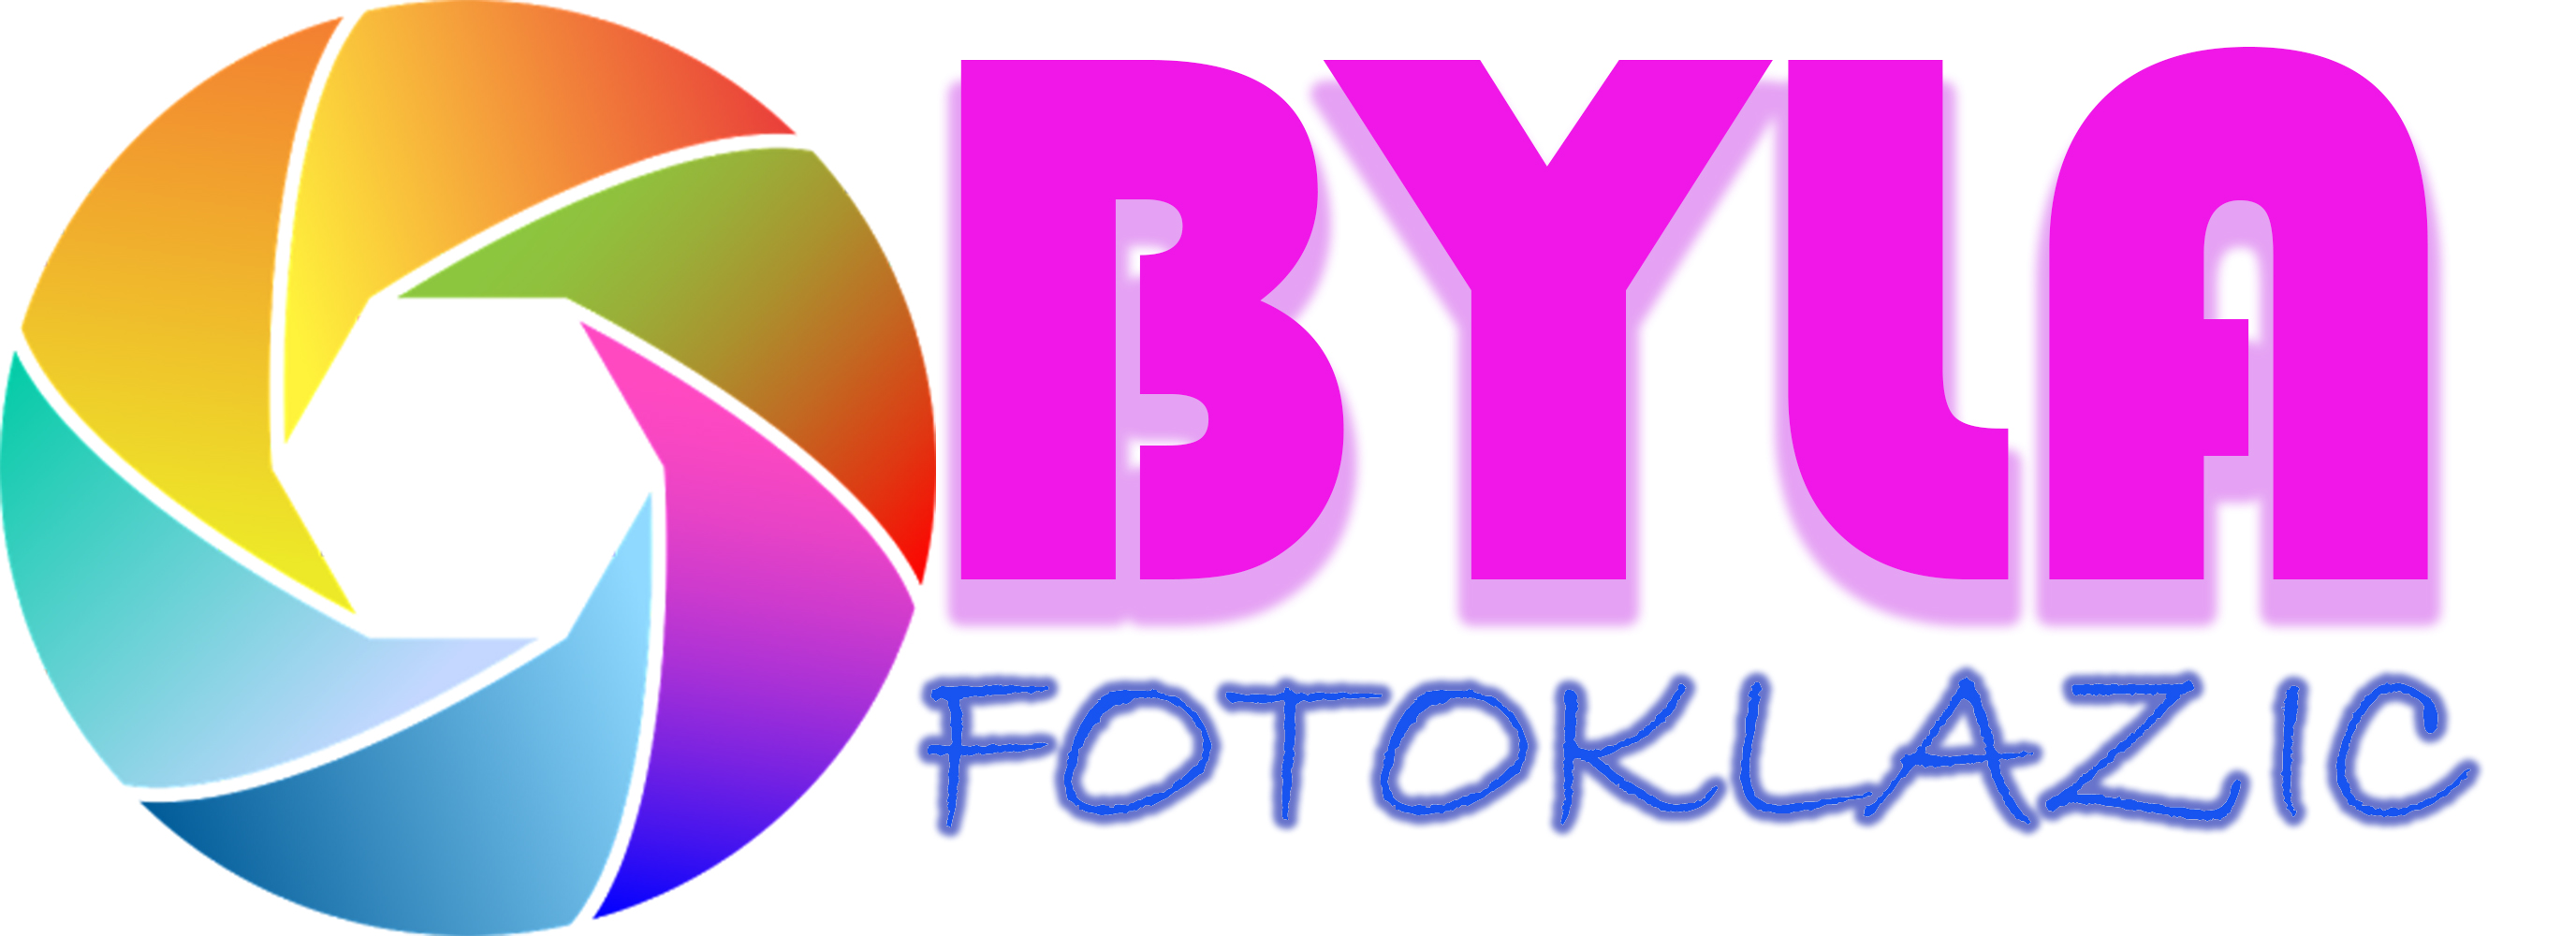 OBYLA FOTOKLAZIC: the WHY and the HOW